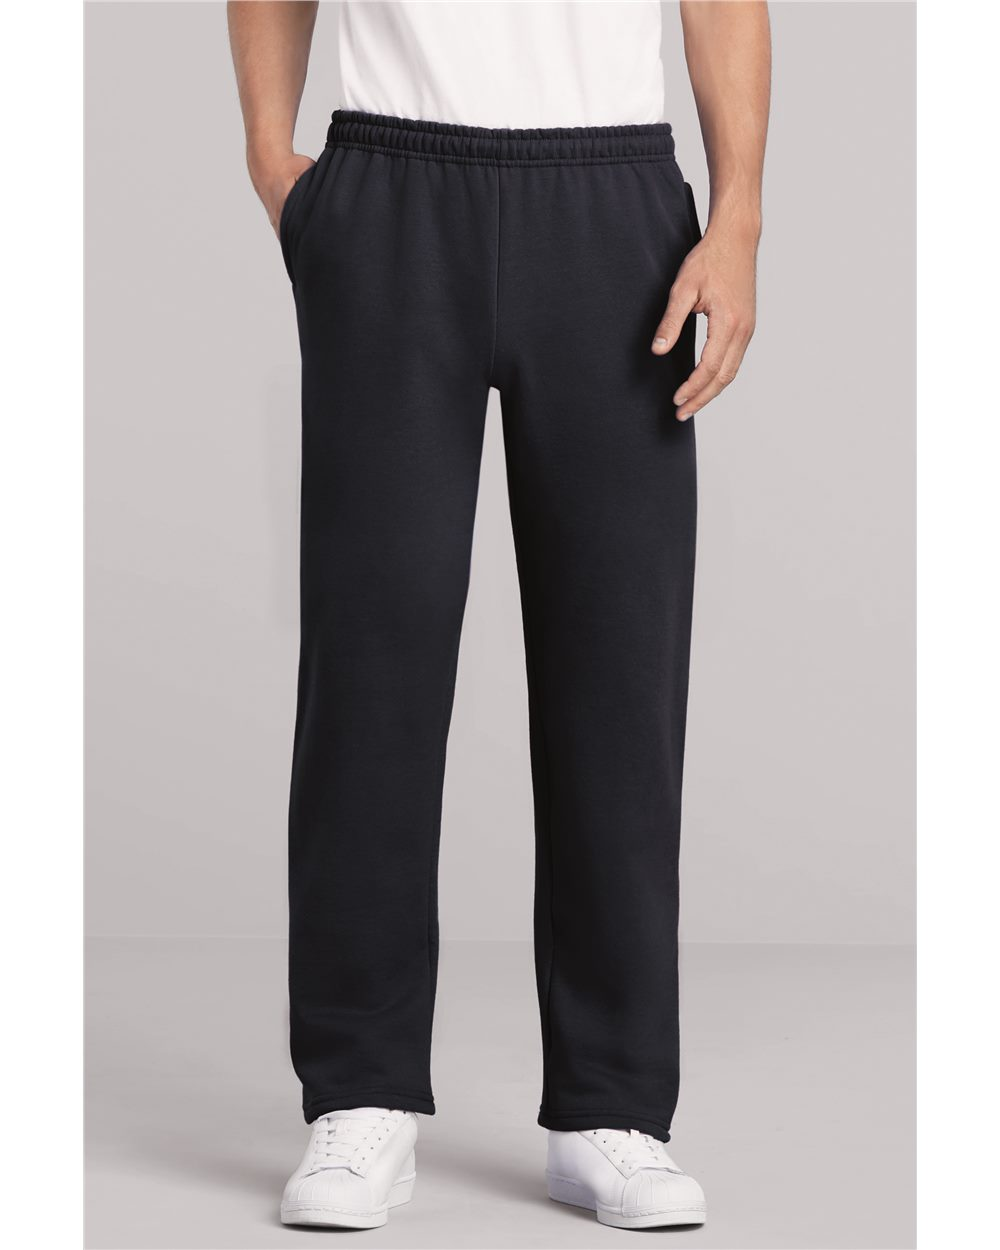 Gildan 18300 - Heavy Blend Open Bottom Sweatpants with Pockets